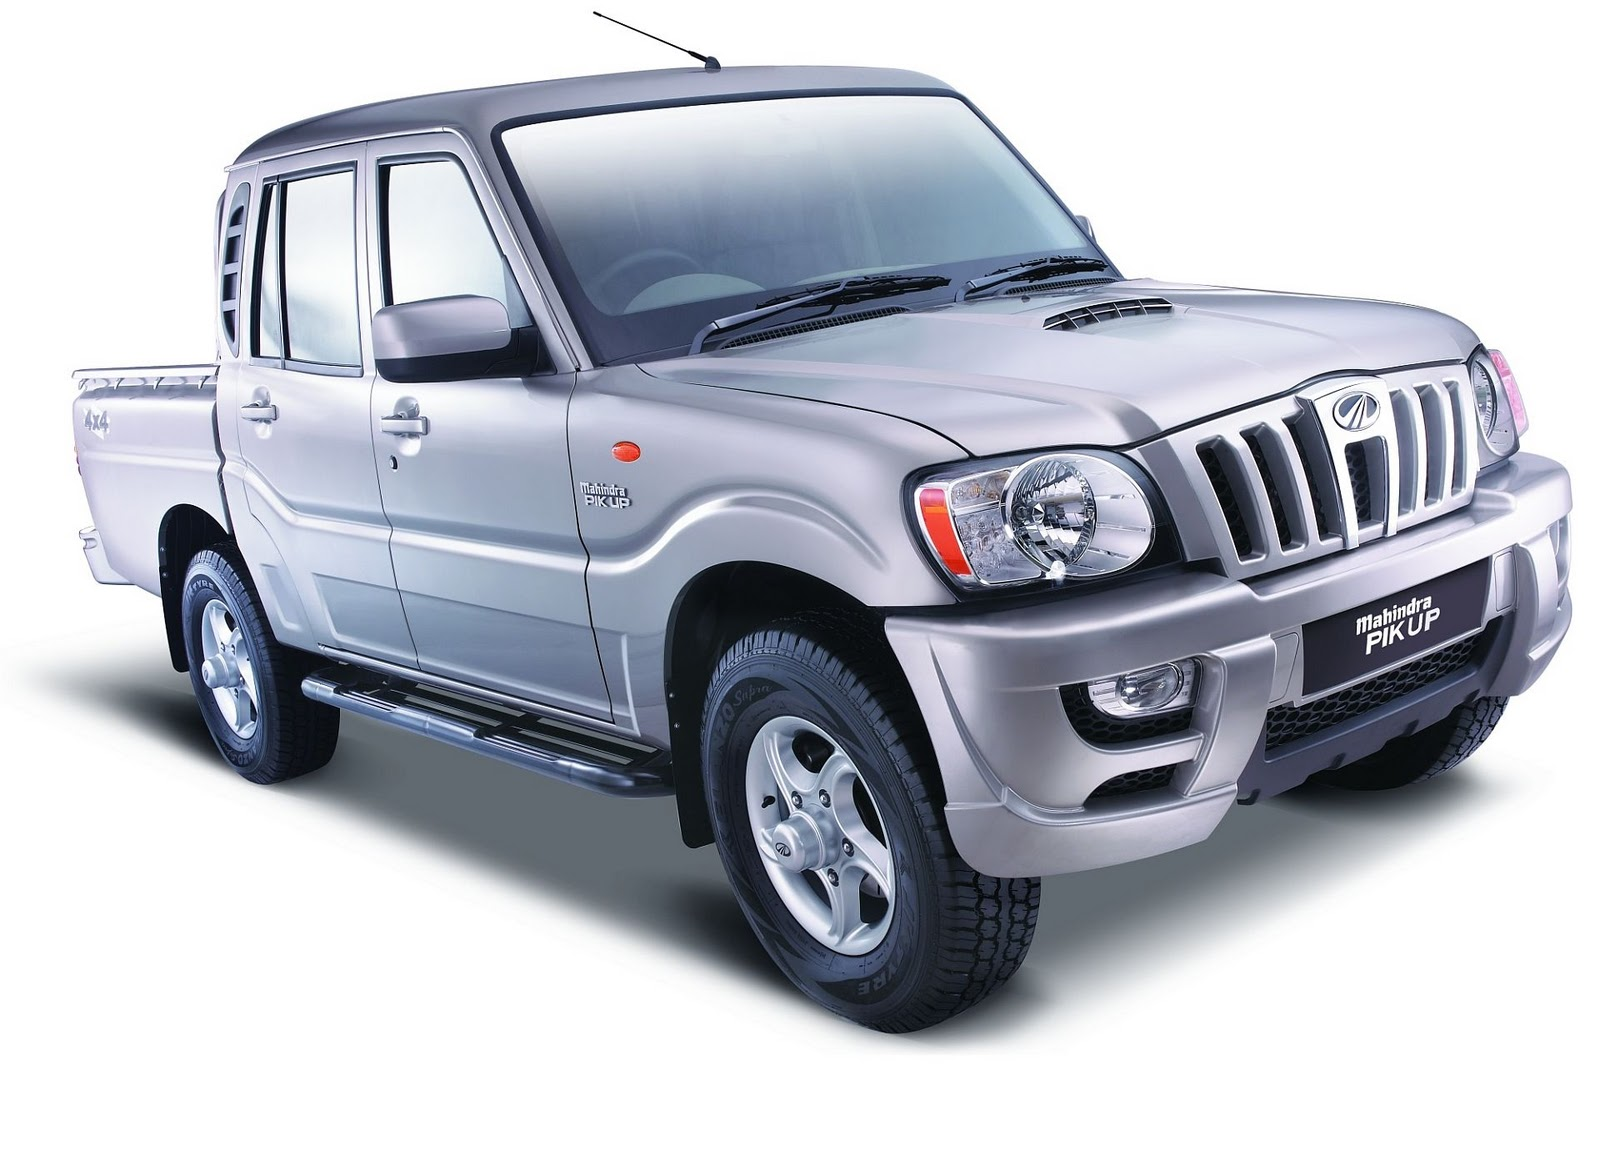 IN4RIDE: EATON M-LOCKER DIFF STIFFENS MAHINDRA SCORPIO